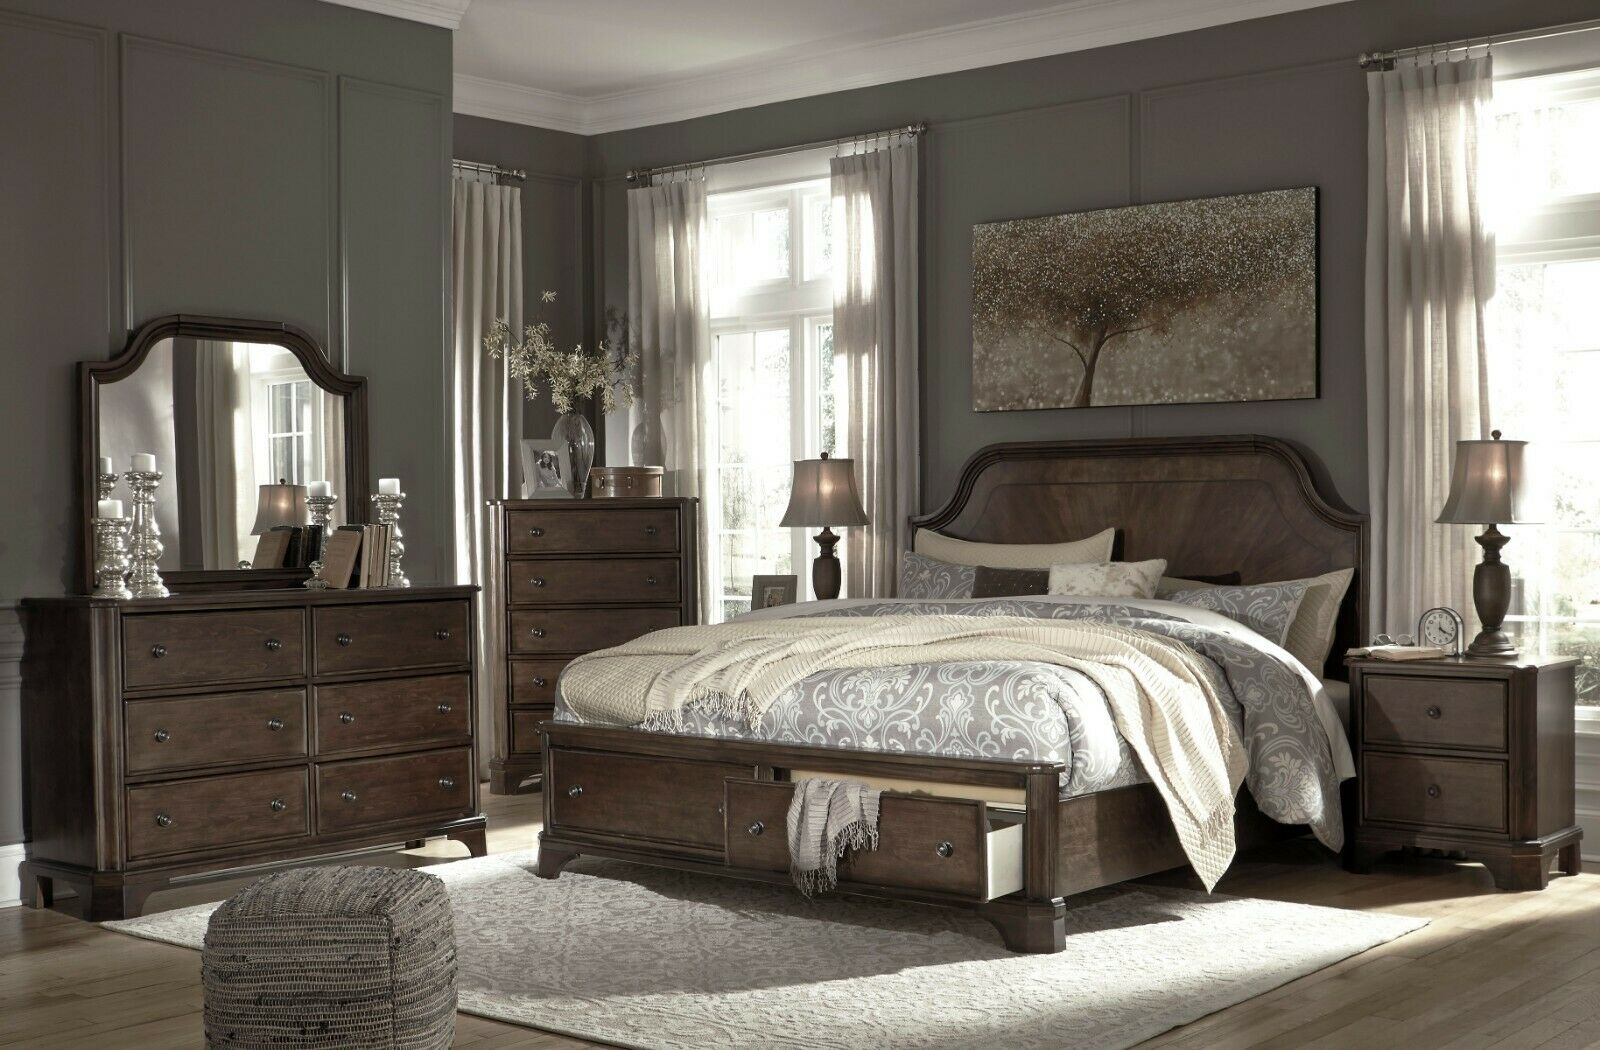 Picture of: Ashley Furniture Adinton Queen Panel 6 Piece Storage Bedroom Set For Sale Online